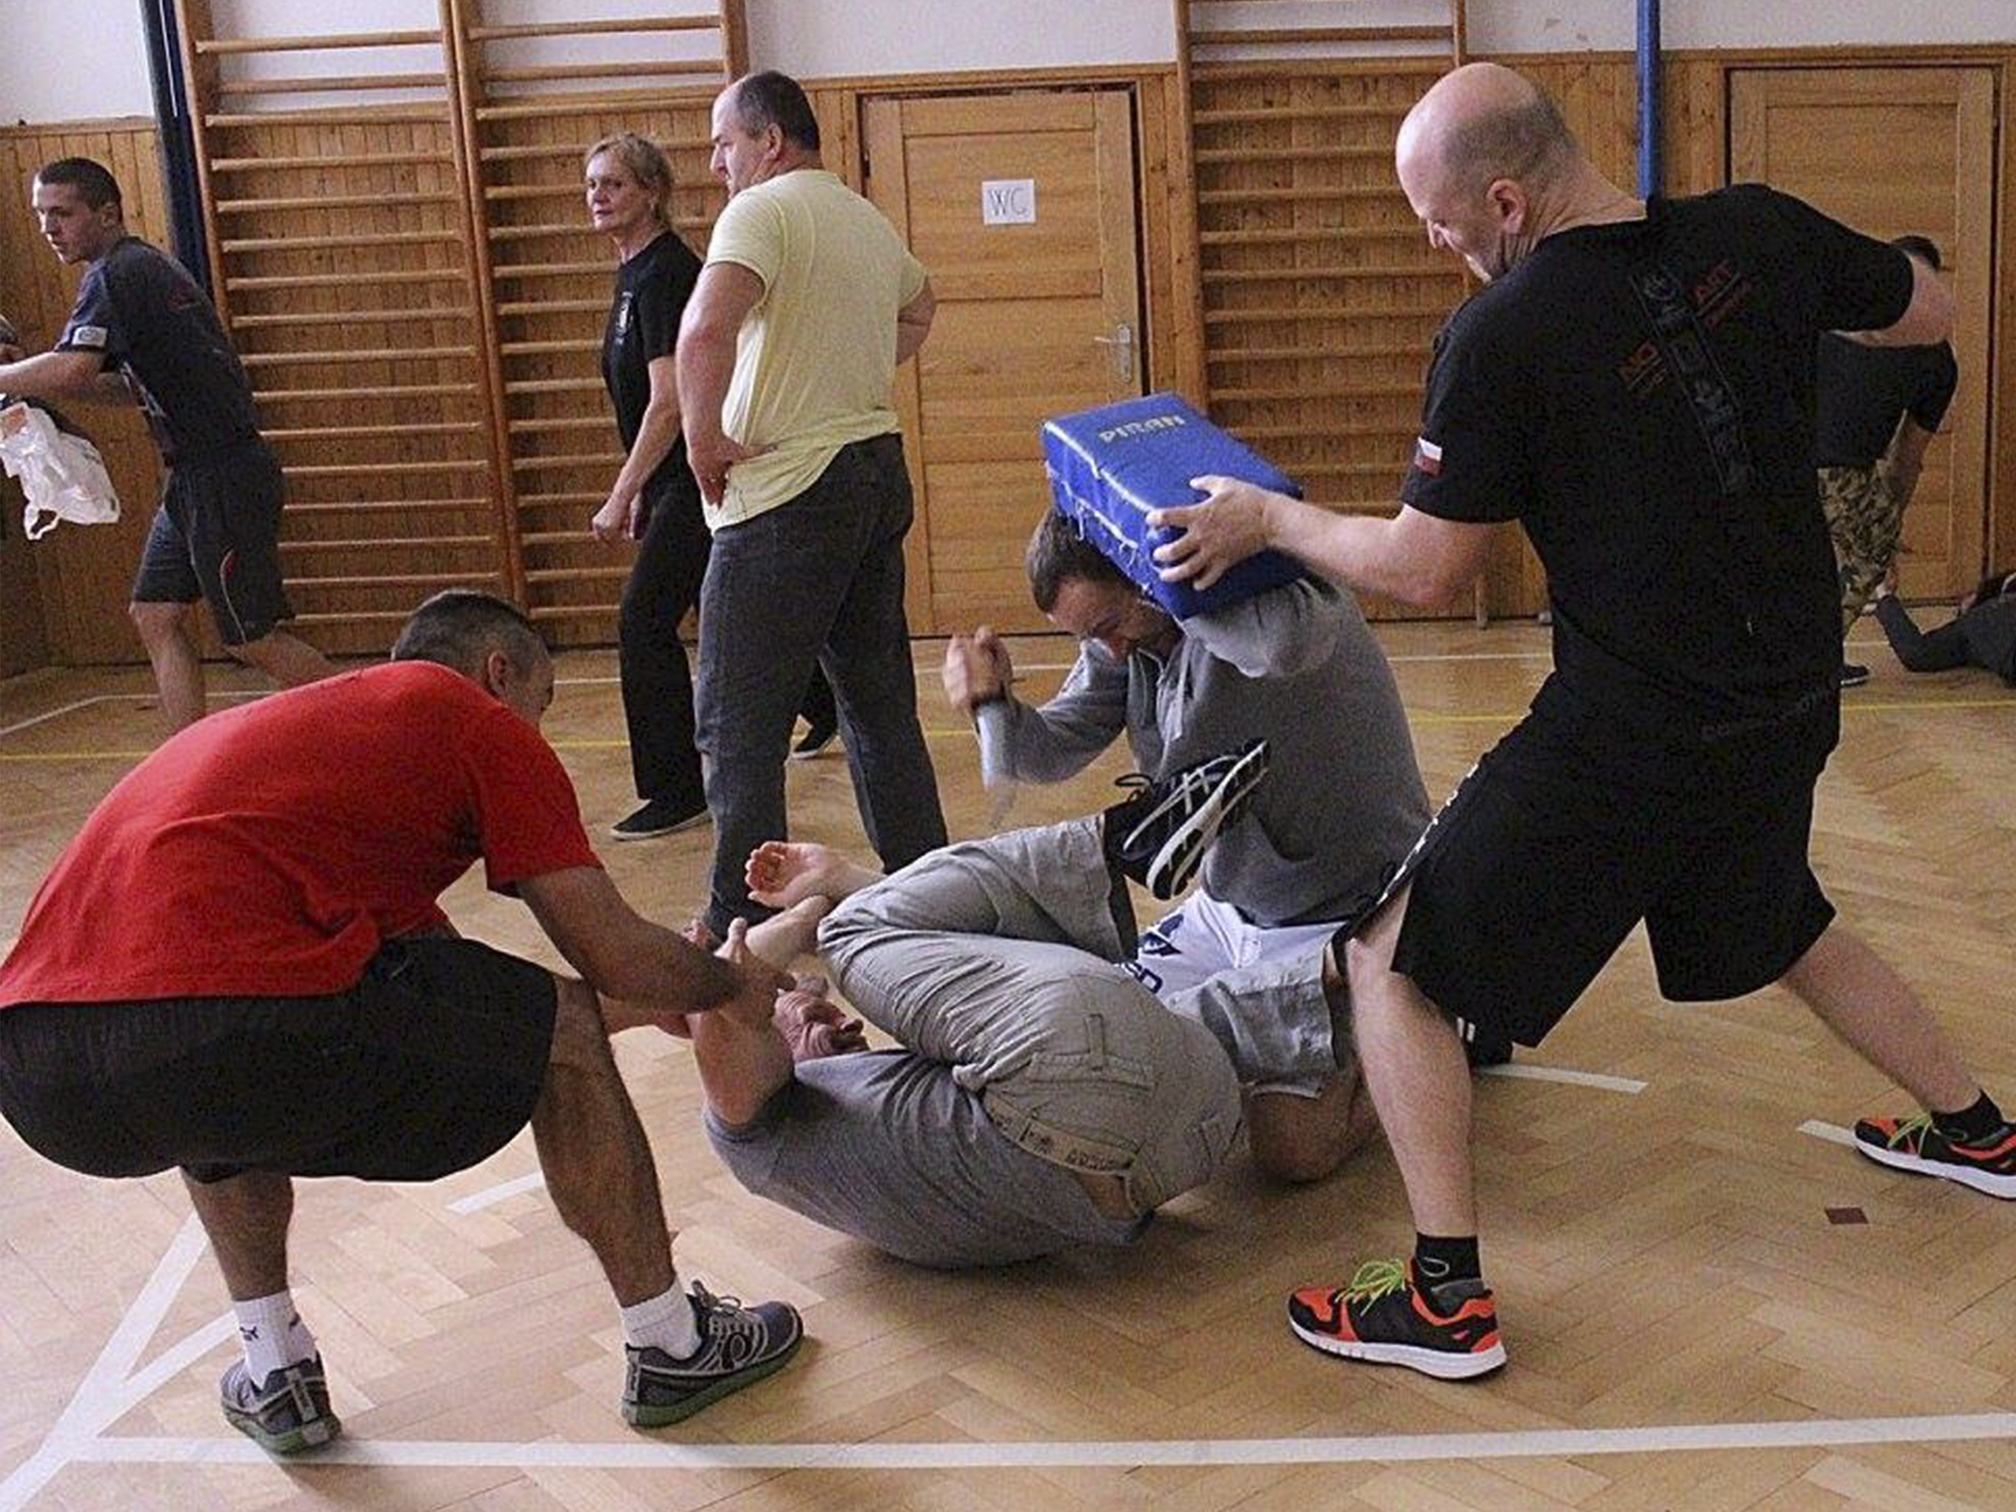 https://urbancombatives.com/wp-content/uploads/2019/01/study-groups.jpg